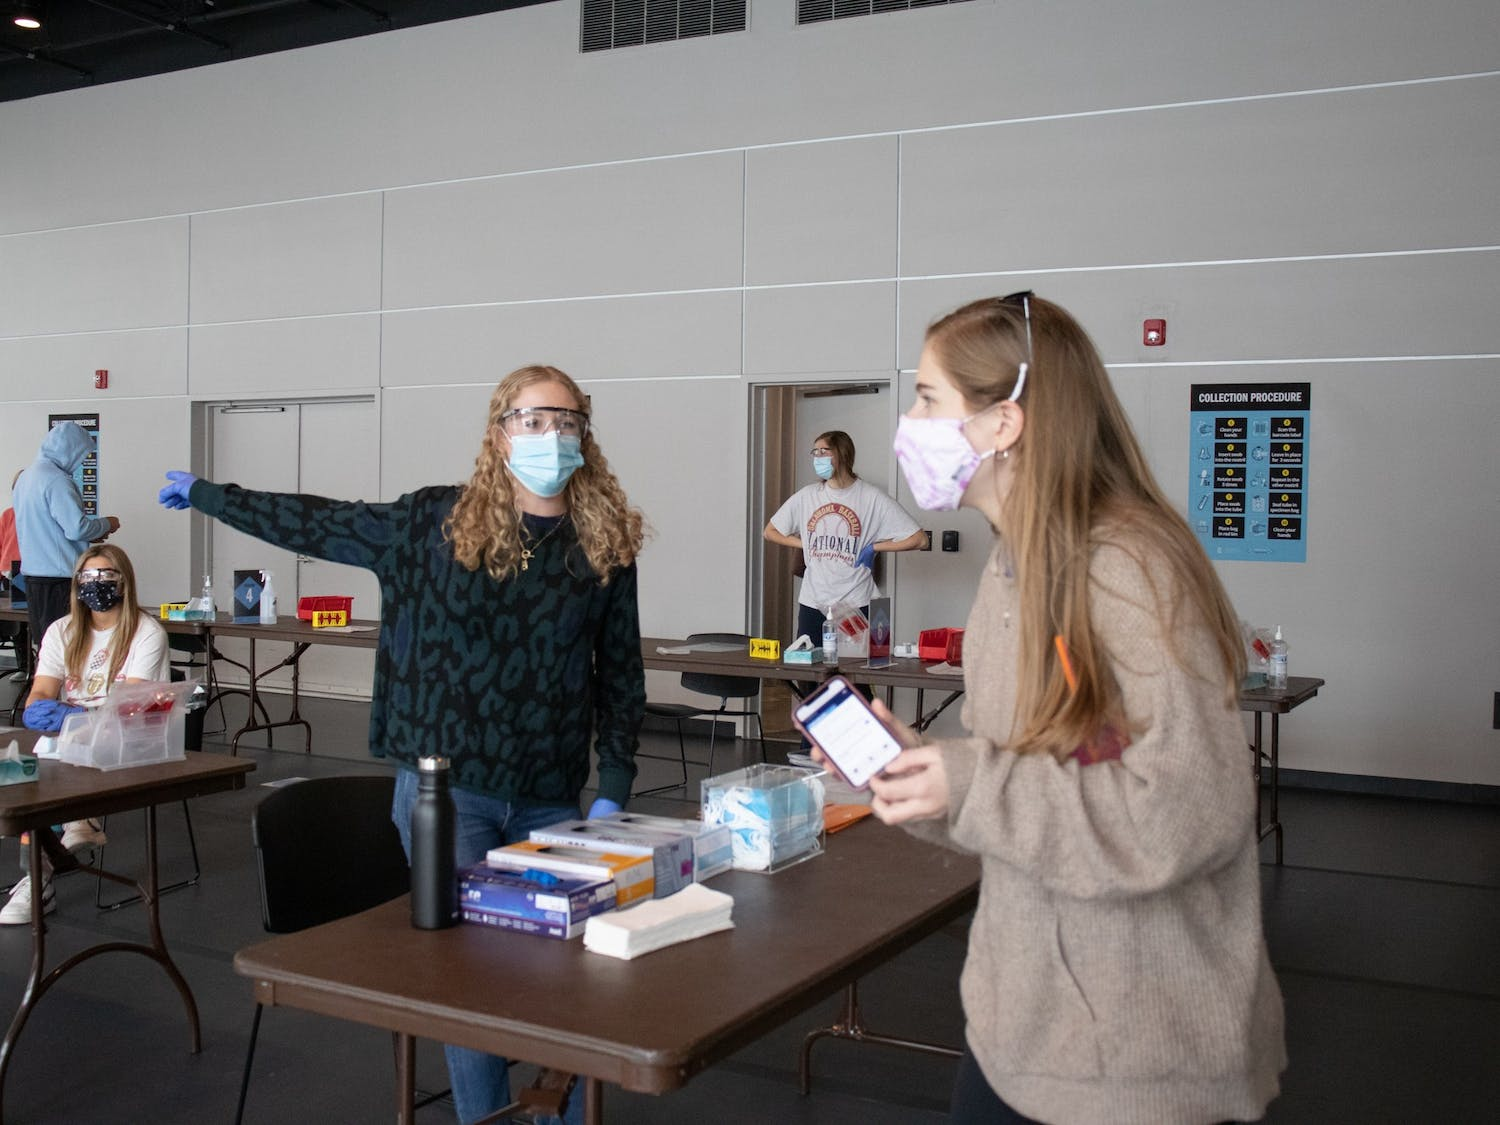 Emily Draper, a senior exercise and sports science major, directs a student at the Current ArtSpace testing site on Friday, Jan. 22, 2021.